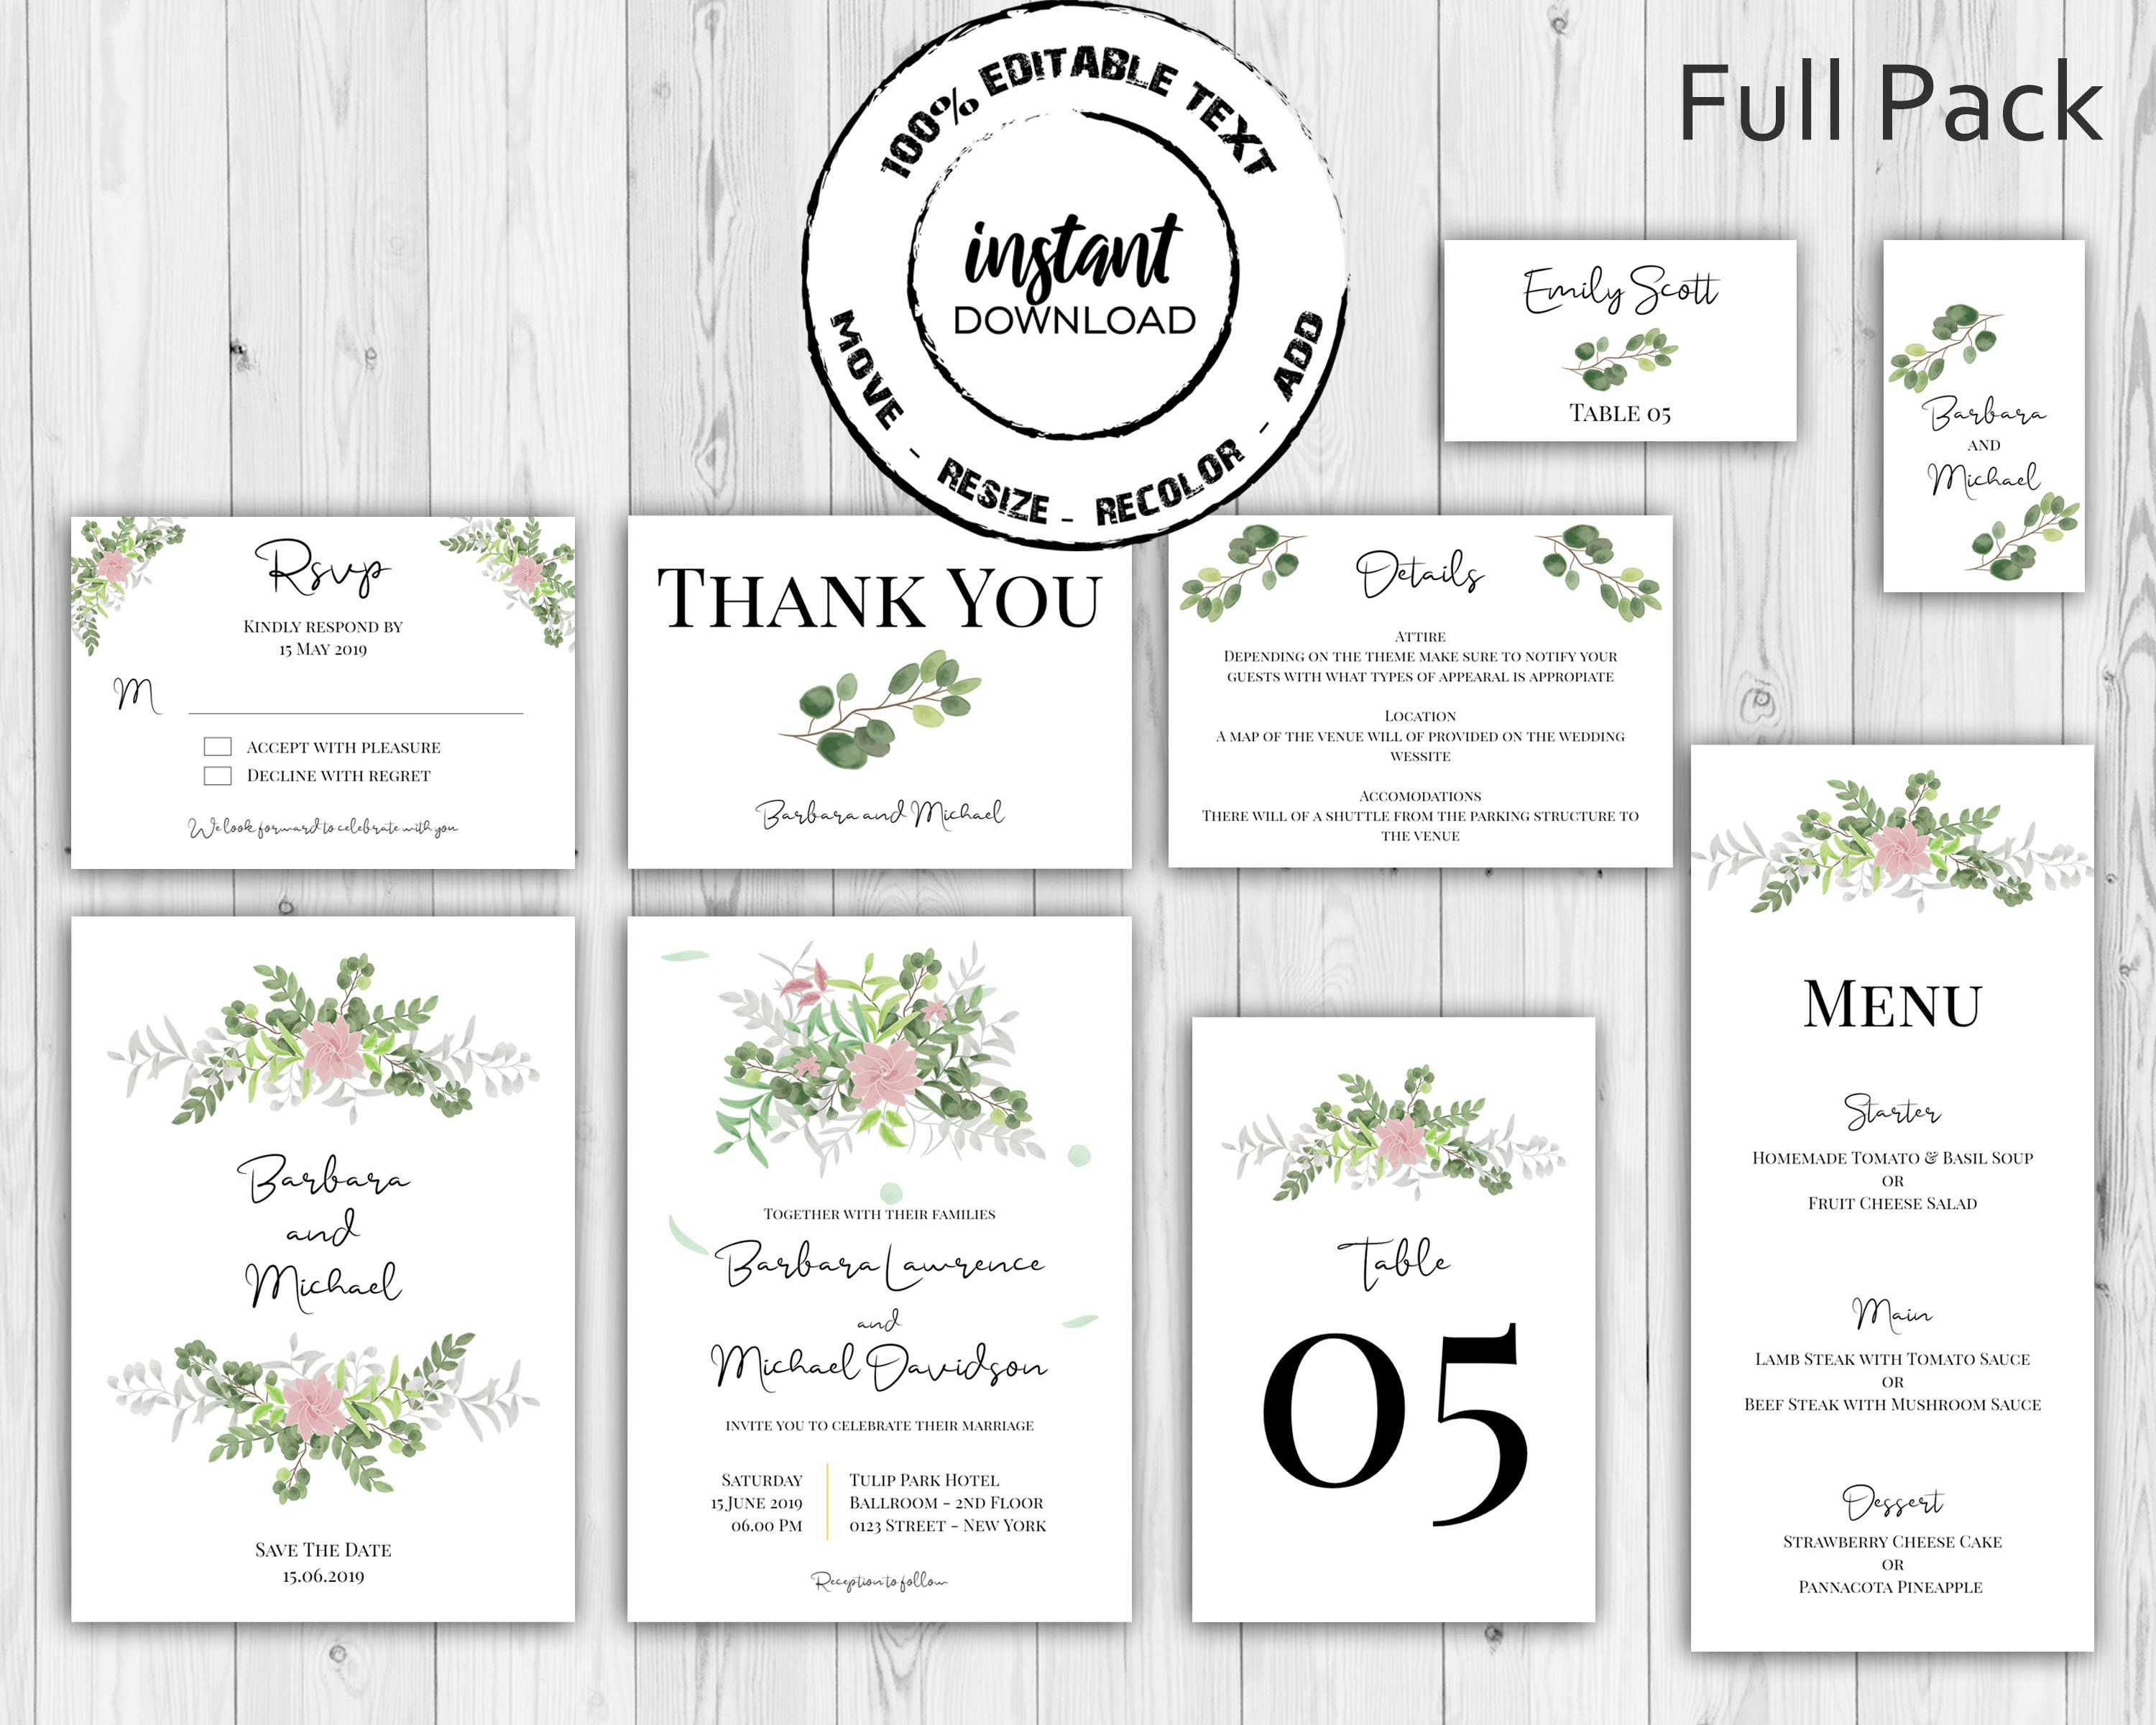 Watercolor Floral Wedding Invitation Full Pack Template Kit With